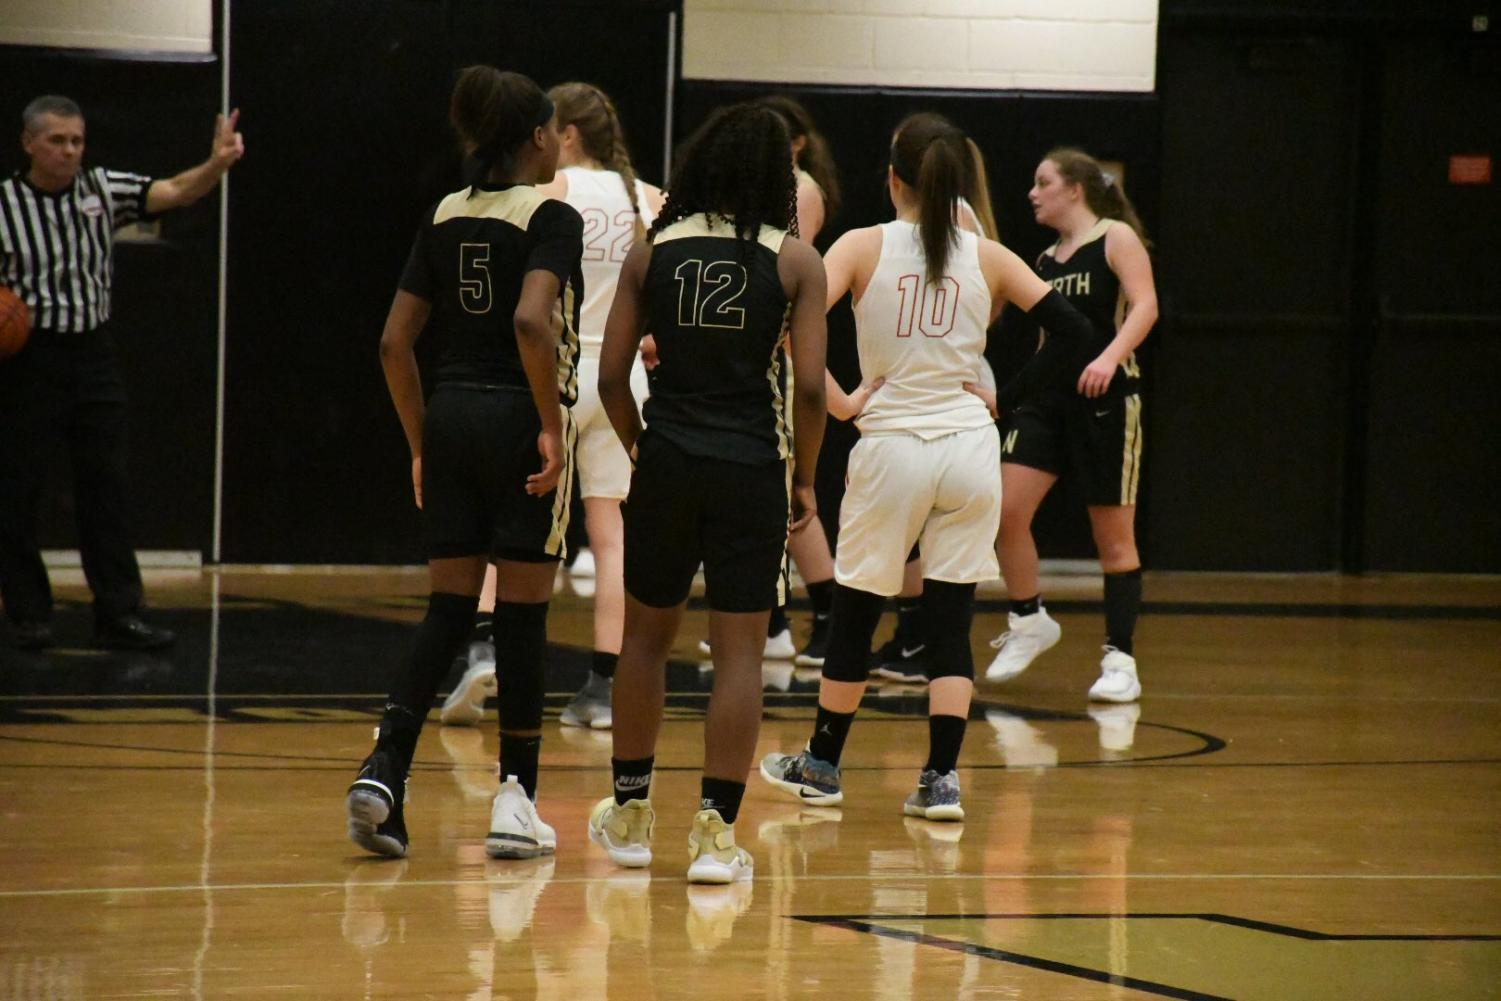 Crusaders Fall Short In Quest For District Title